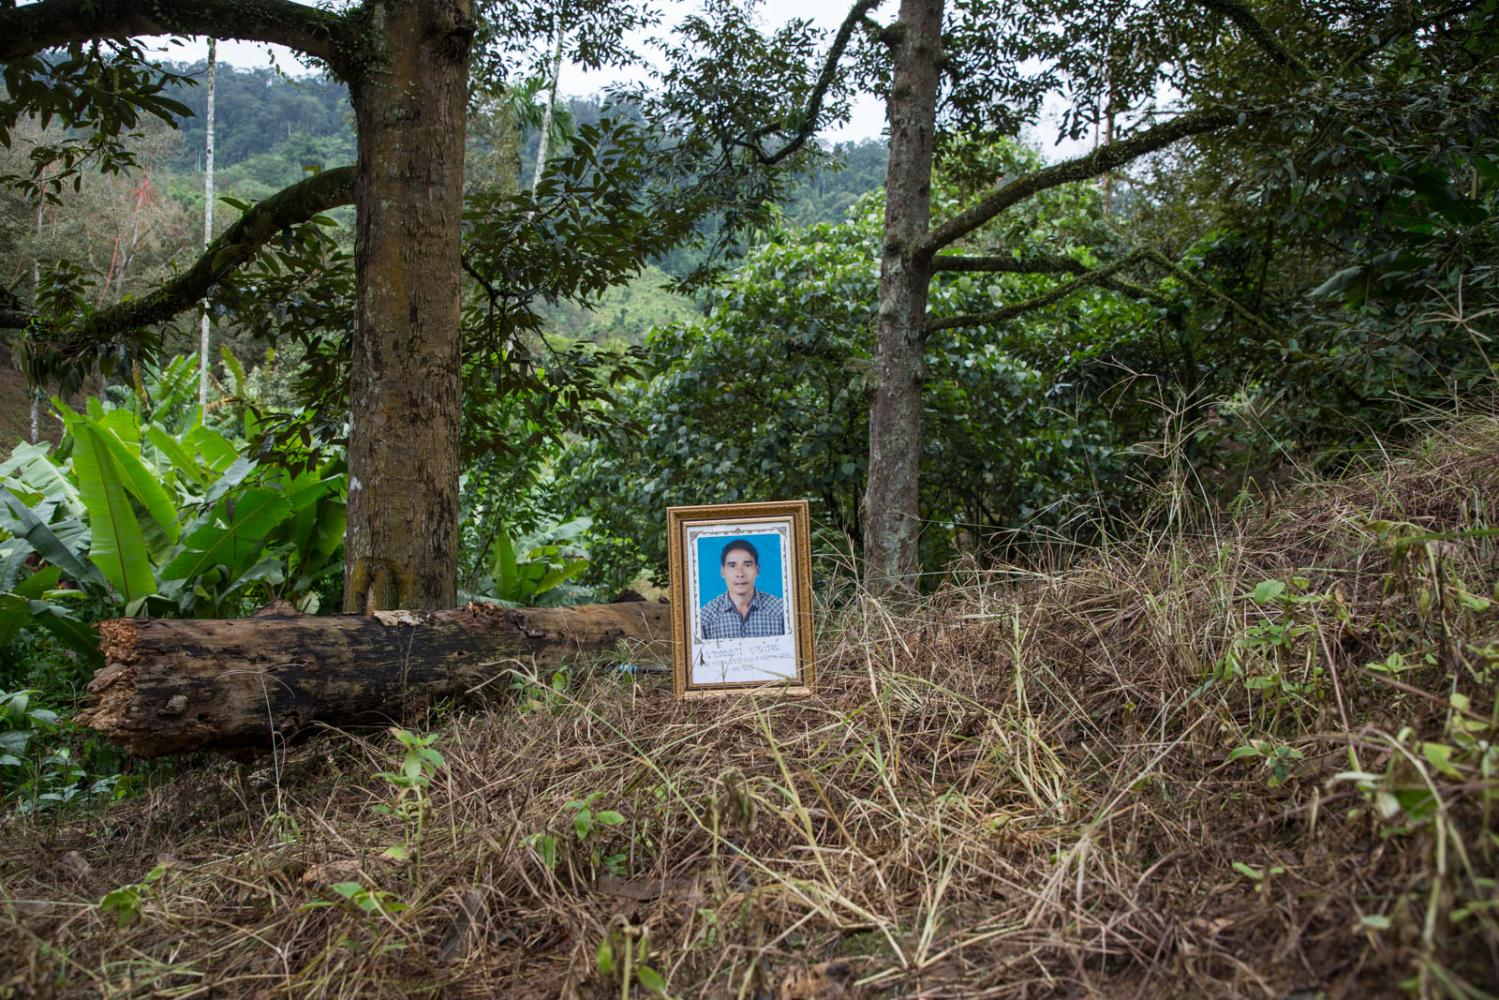 Phayao Panroj, a durian farmer and conservationist from Khao Tako forest, Thung Tako District, Chumphon Province, was shot dead by two assailants while watering his durian trees with his wife on 8 May 2016. He was believed to be shot because he exposed activities by outsiders that the villagers said would damage the water source of the valley if it continued. He collected evidence and took it to the press and government officials which infuriated those involved.